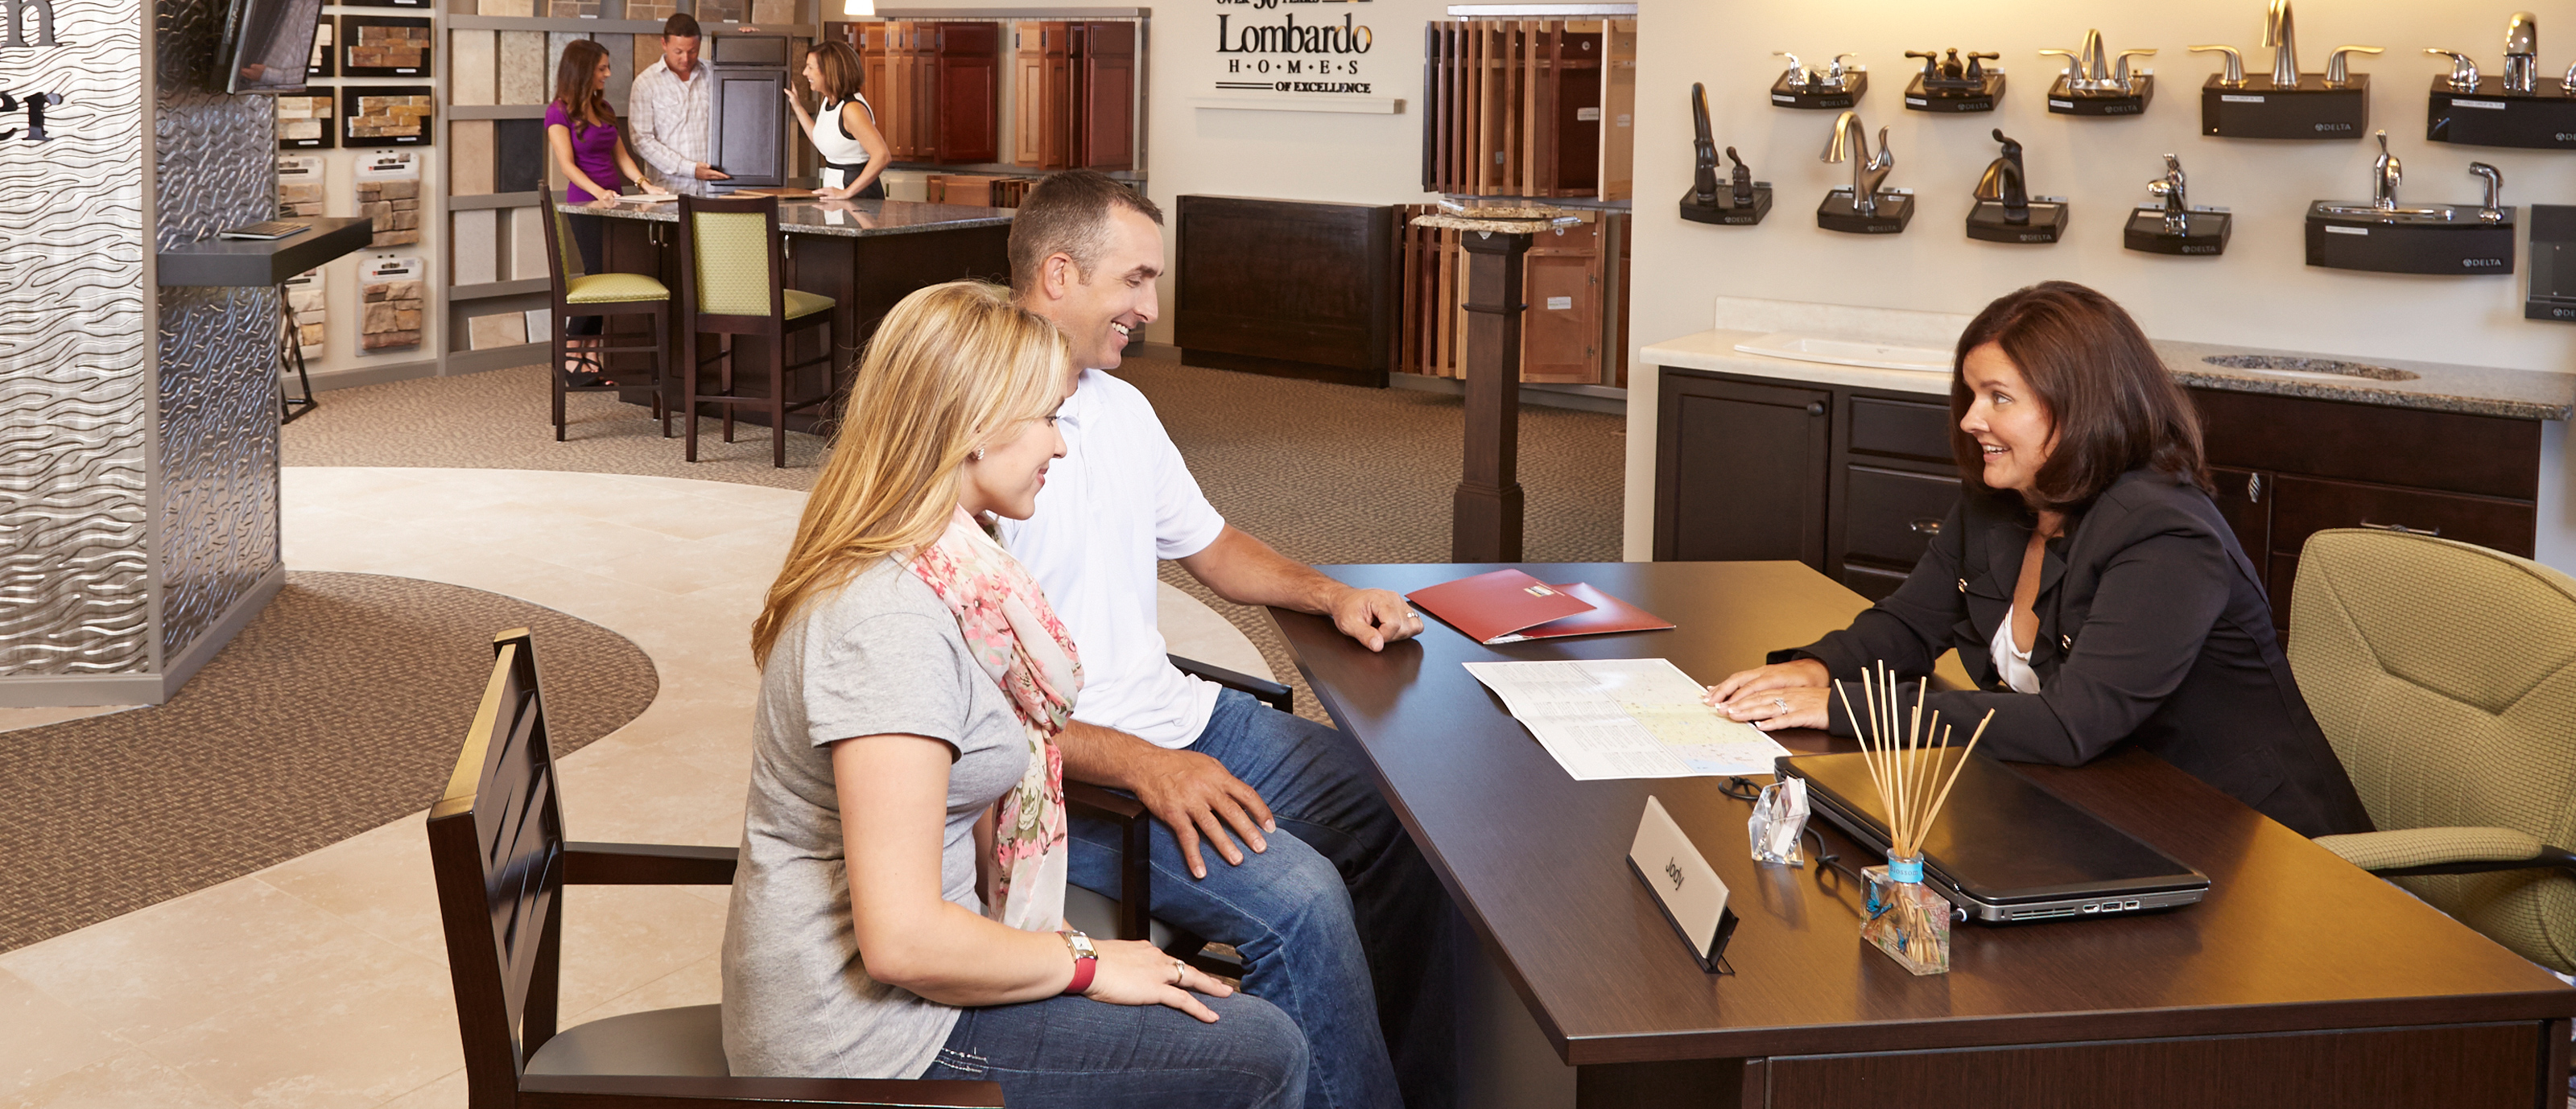 Work With A Home Designer | Lombardo Homes